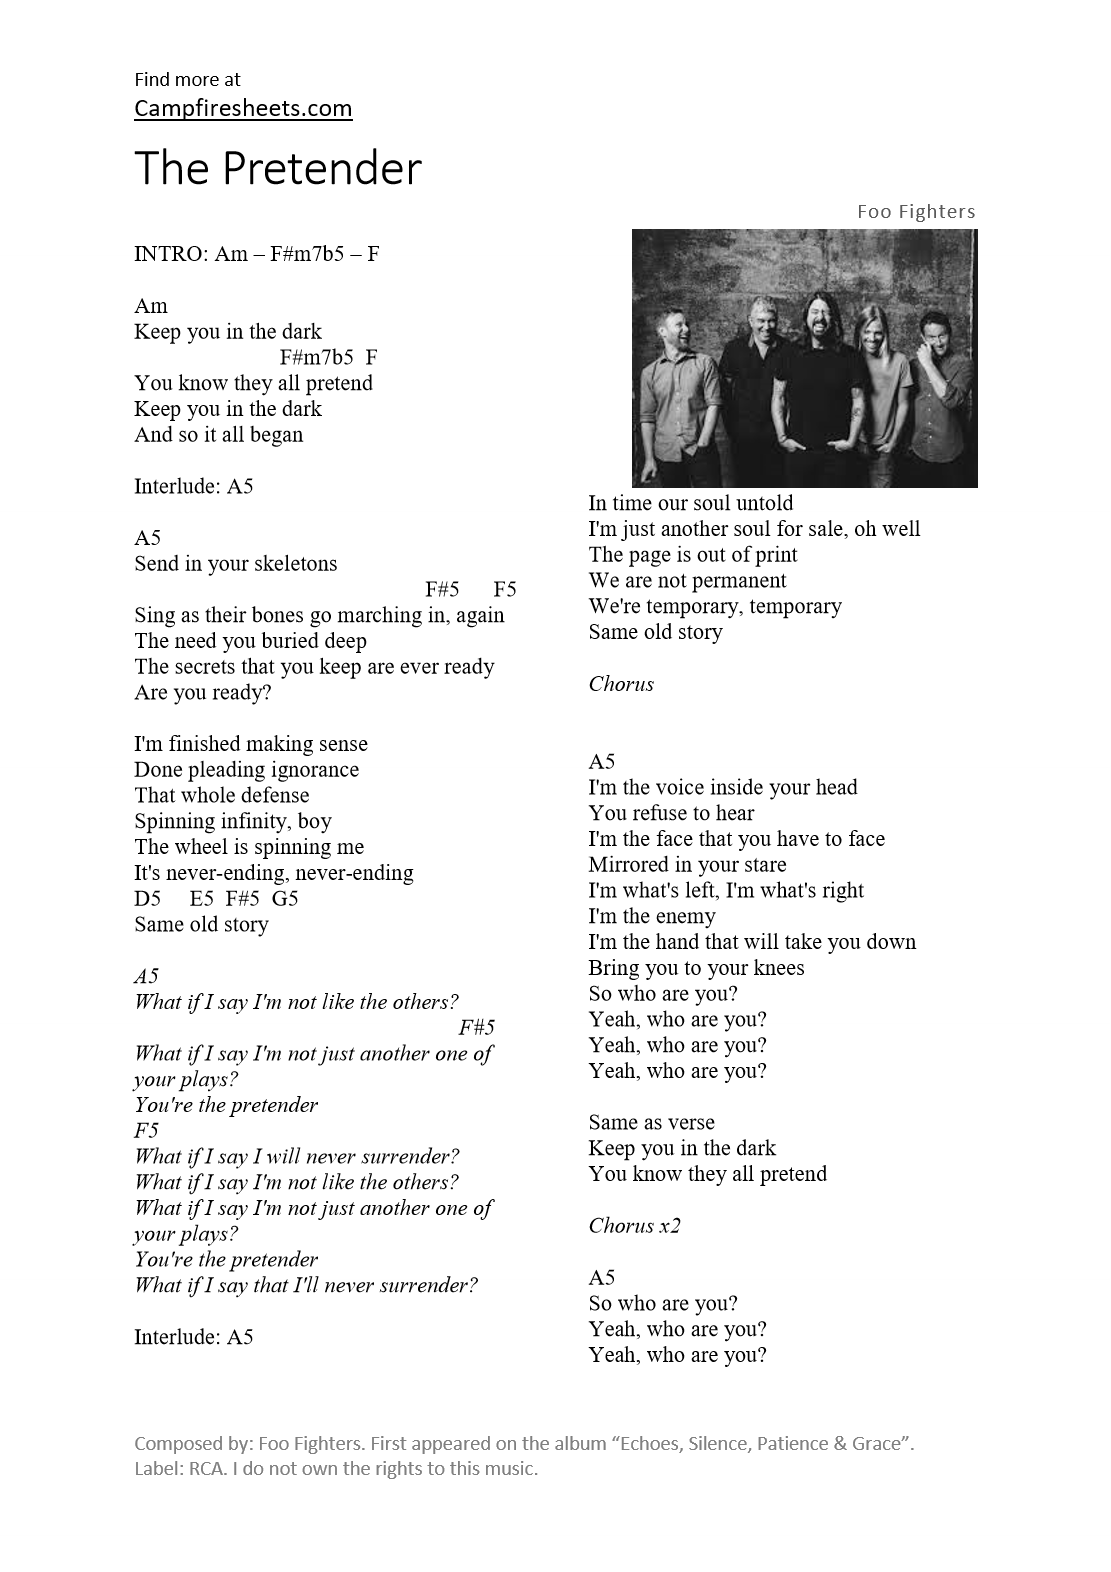 The pretender foo fighters 1 page sheet music chords and lyrics hexwebz Images